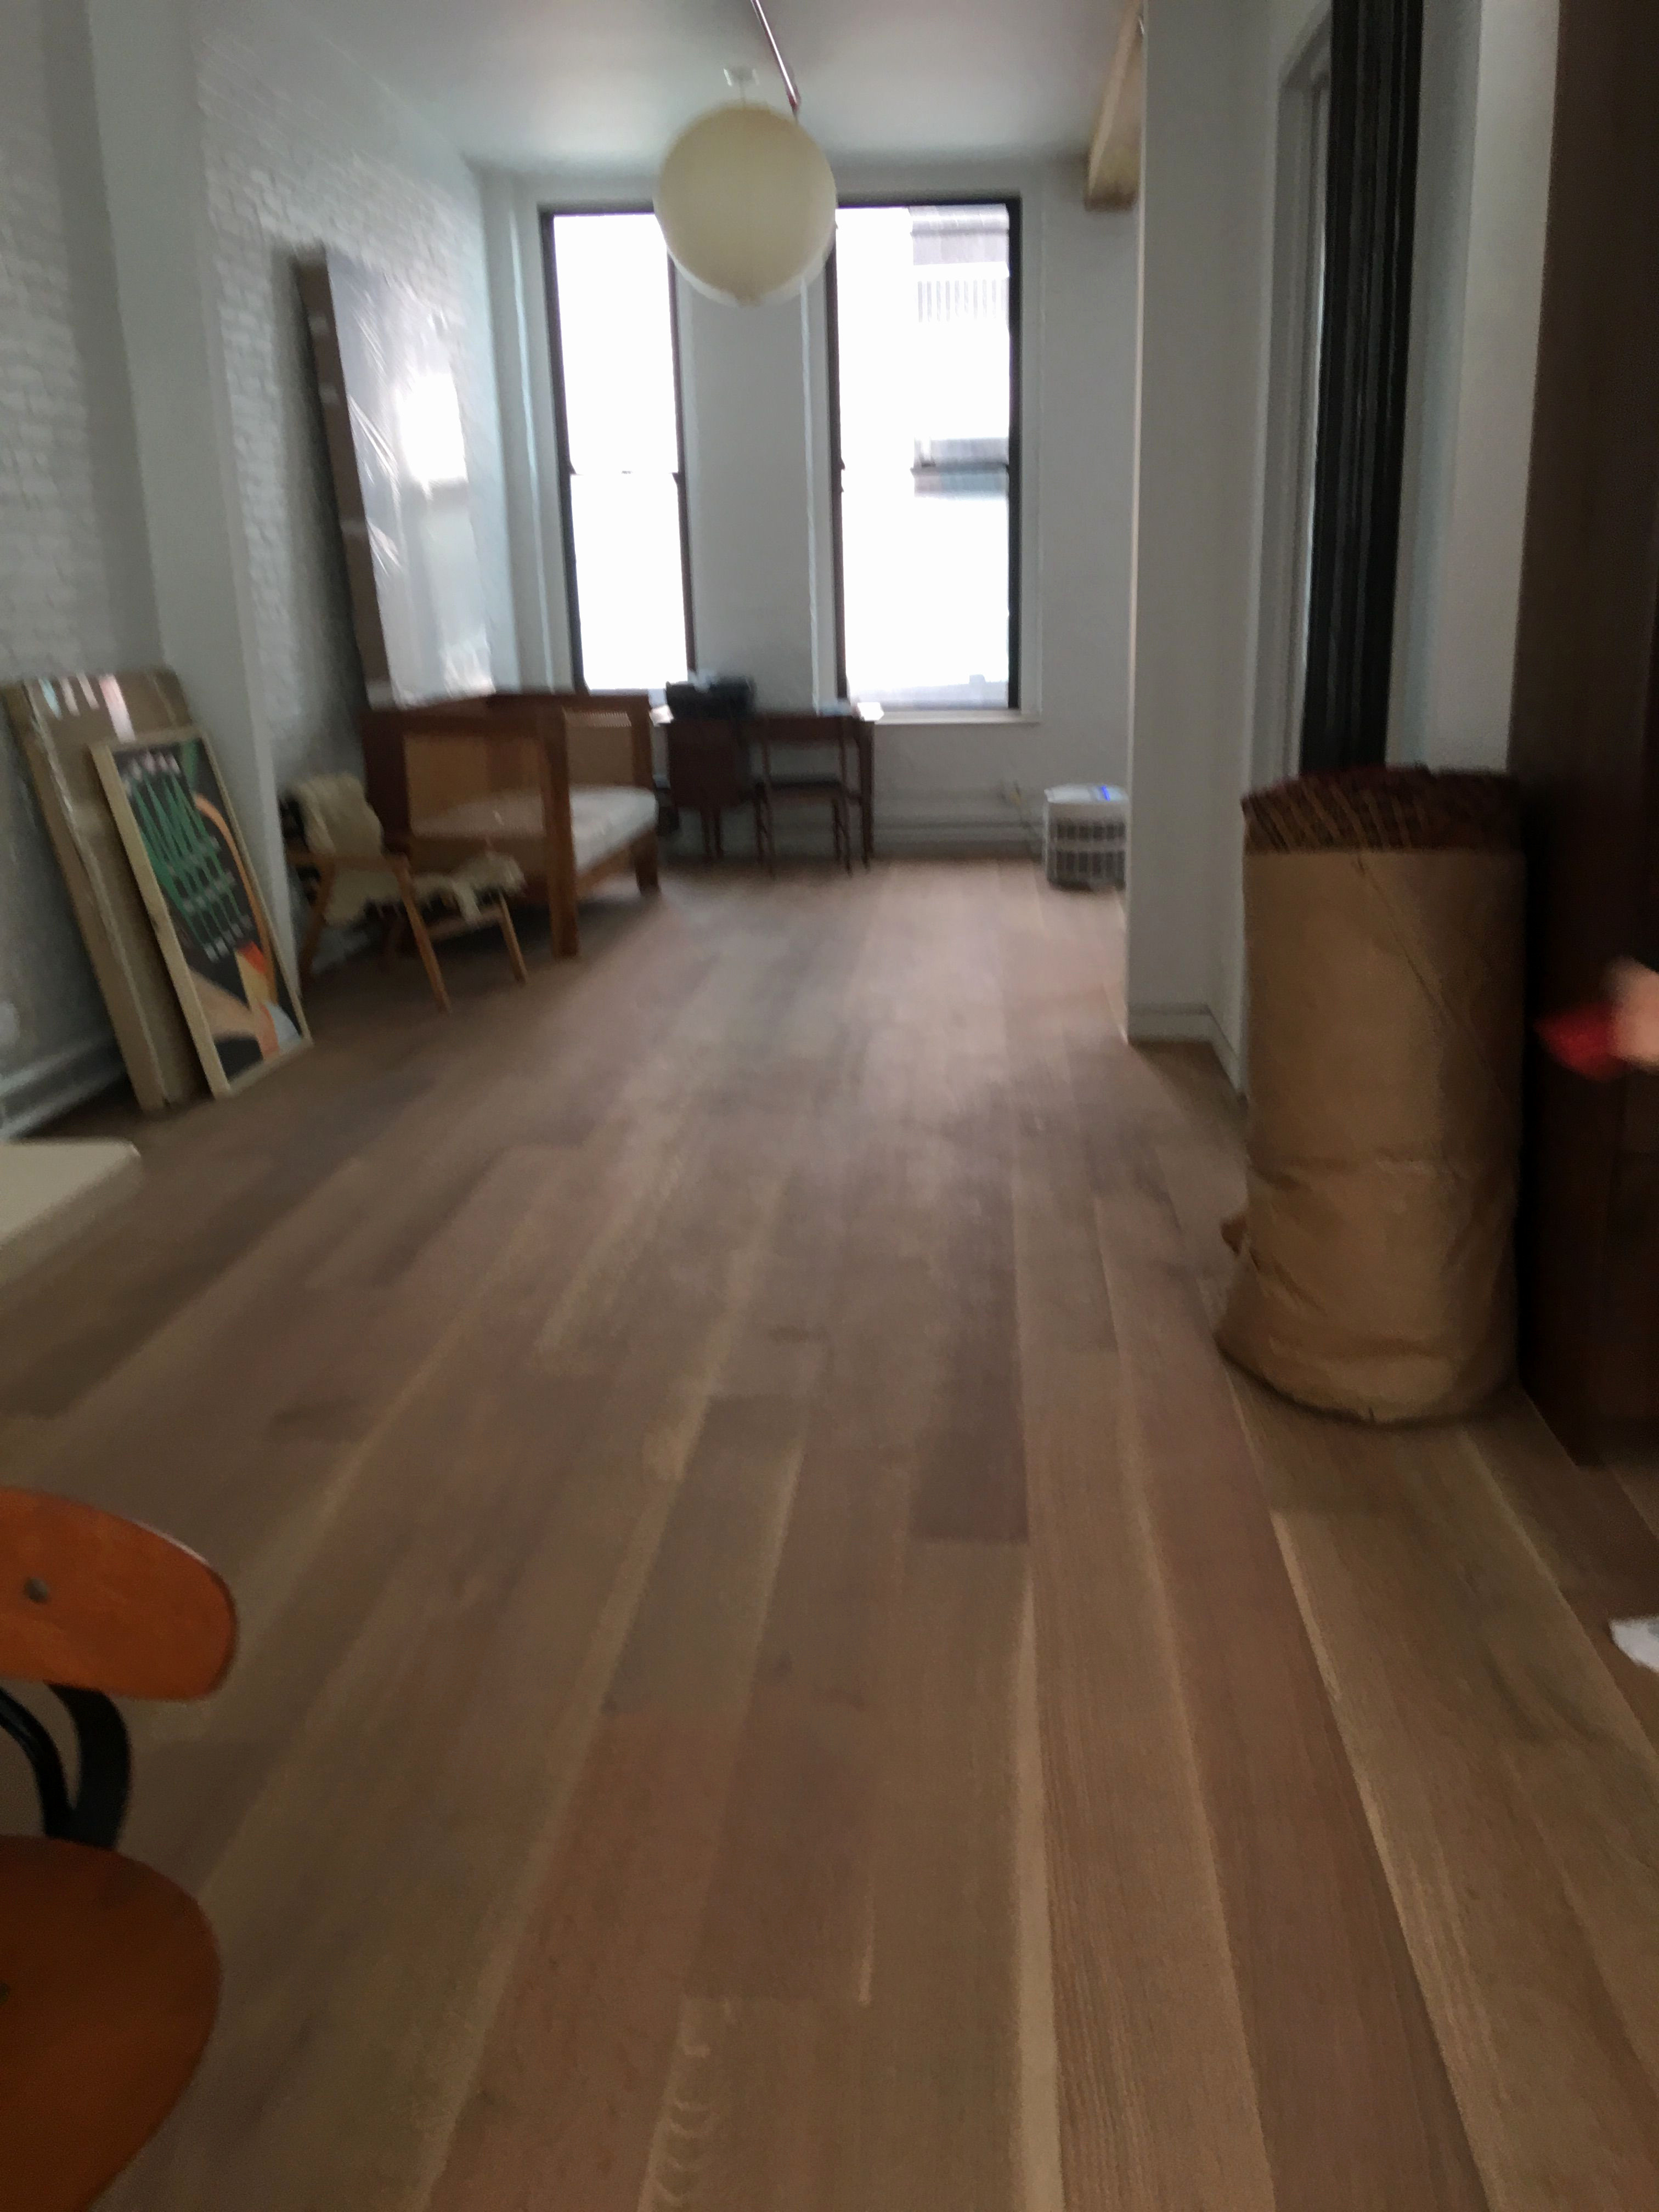 hardwood flooring usa of hardwood floor refinishing archives wlcu with hardwood floor options unique hardwood floors are not as expensive as they used to be and hardwood floor